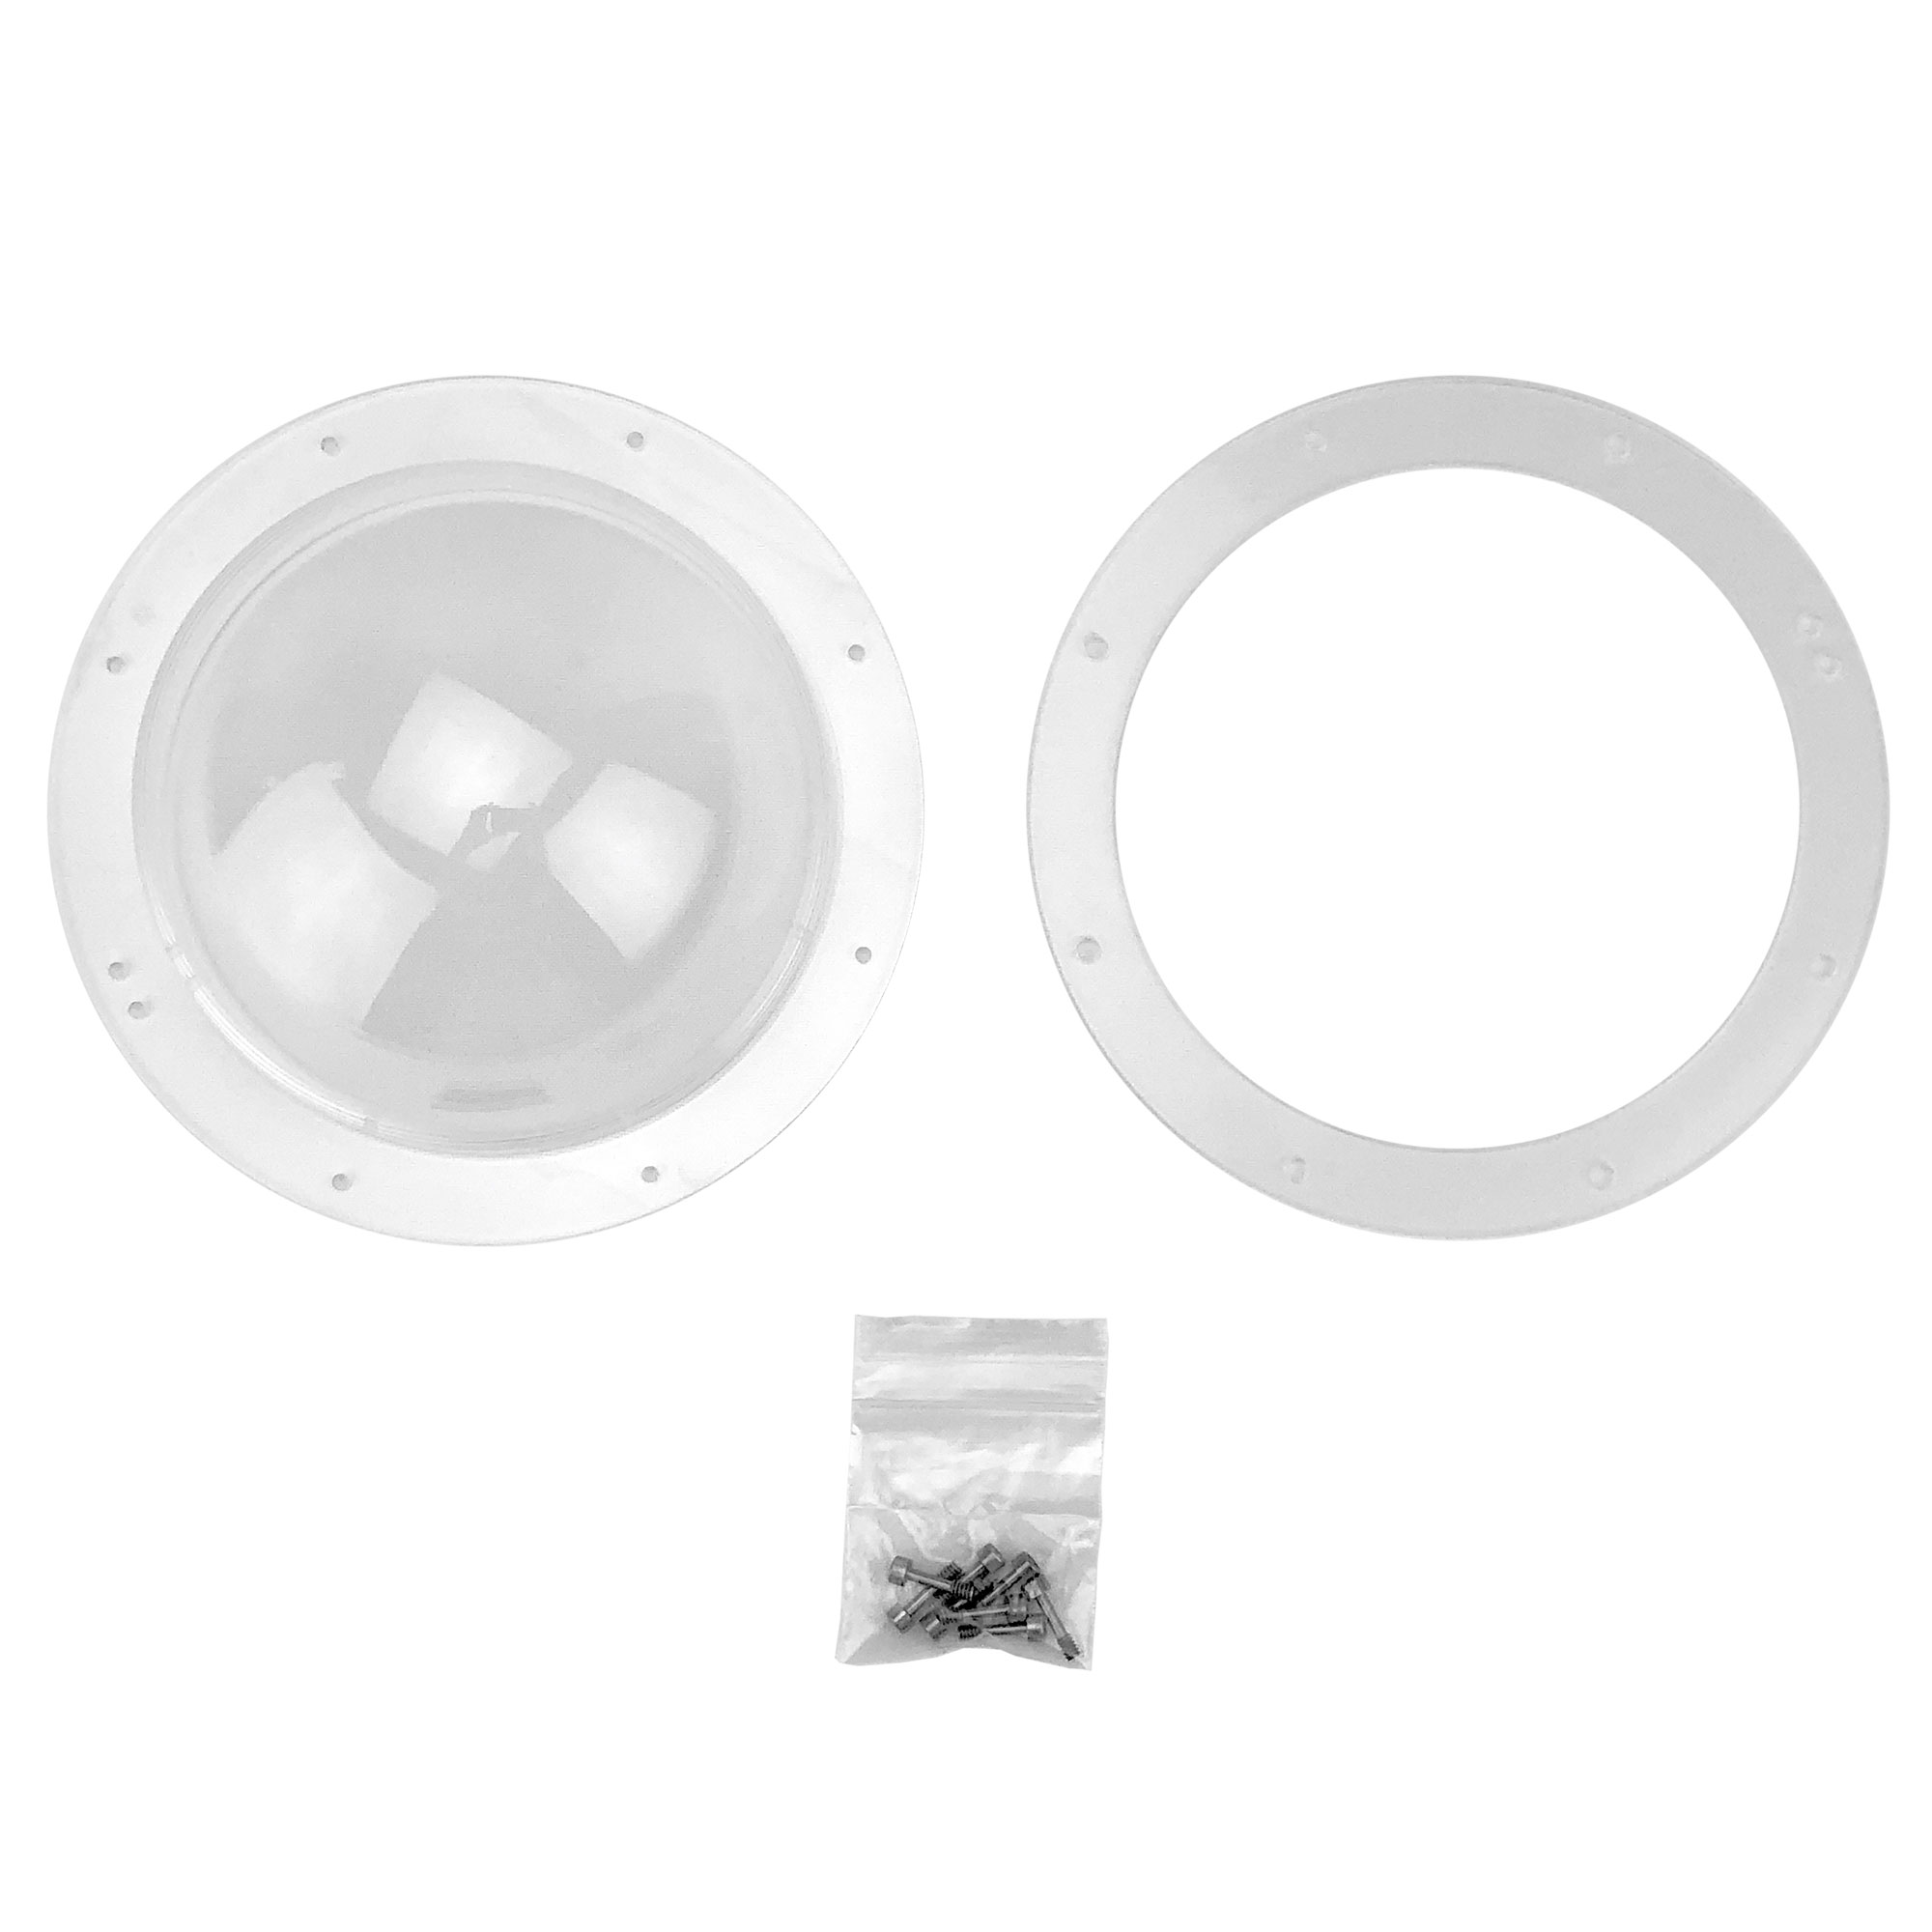 Half Sphere Lens For BASH - Clear Lens Option (AC-HS-LENS-C)